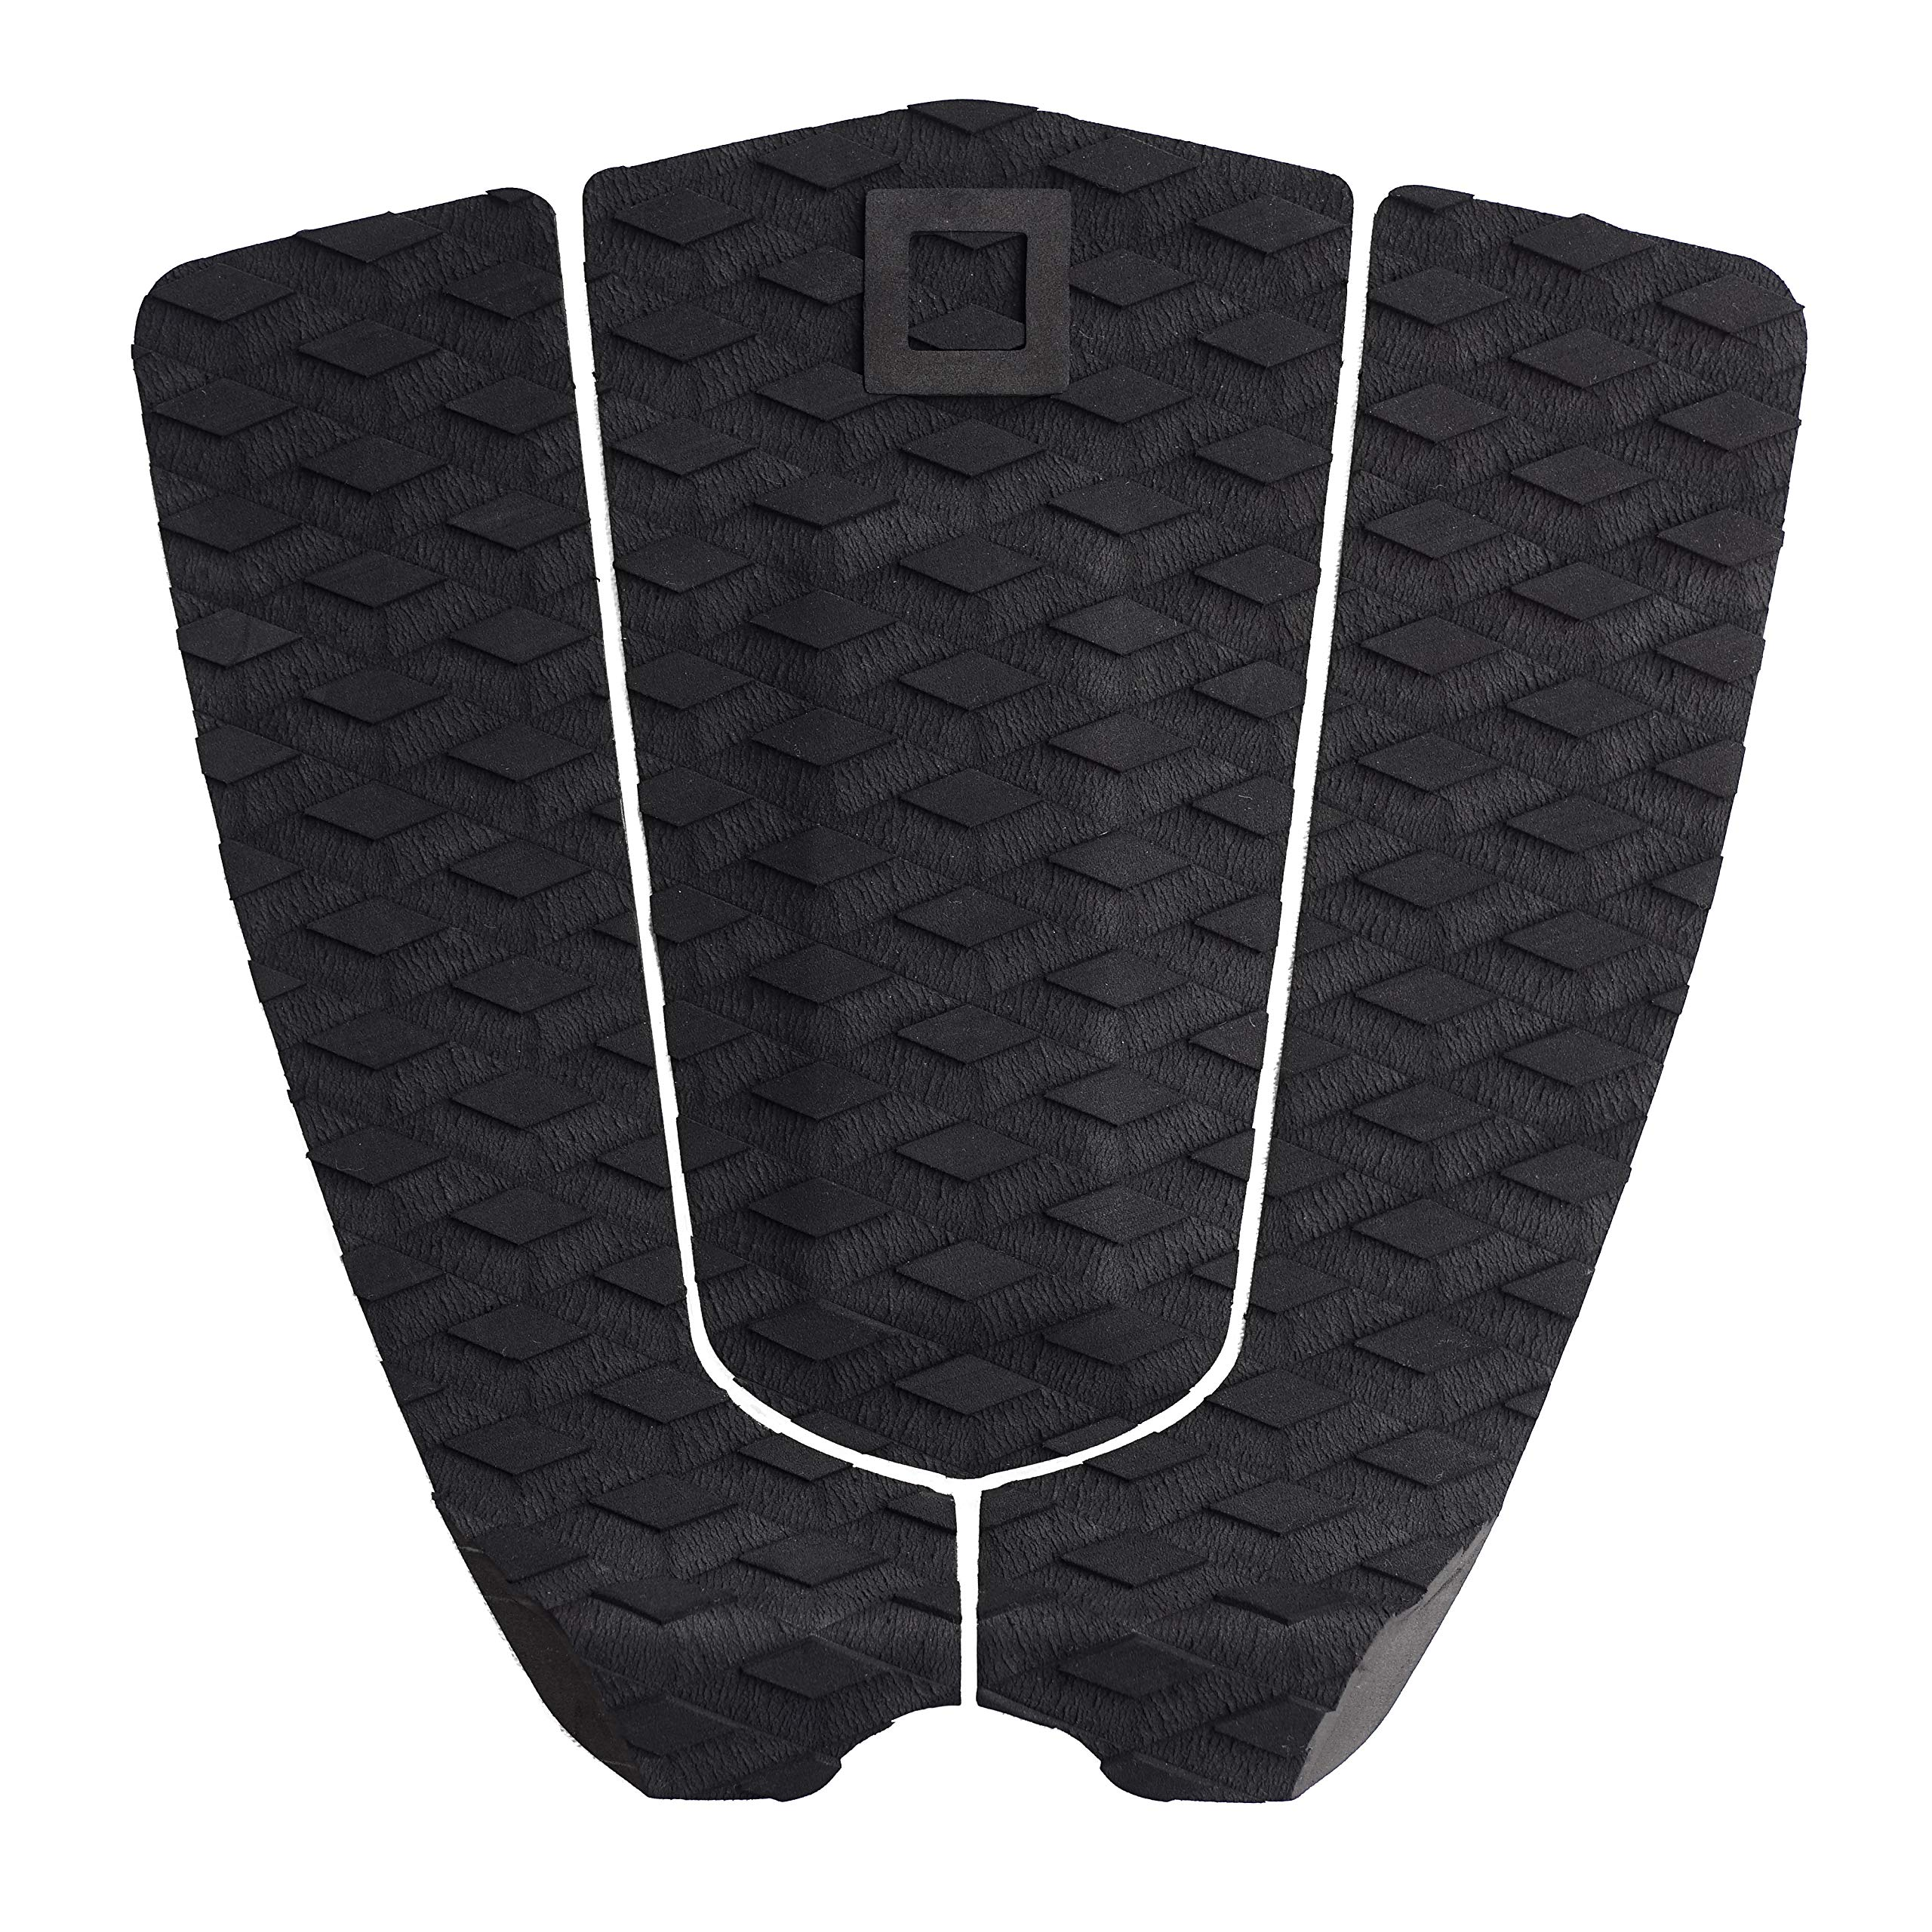 c9afc0f67c2d Best Rated in Surfboard Traction Pads   Helpful Customer Reviews ...